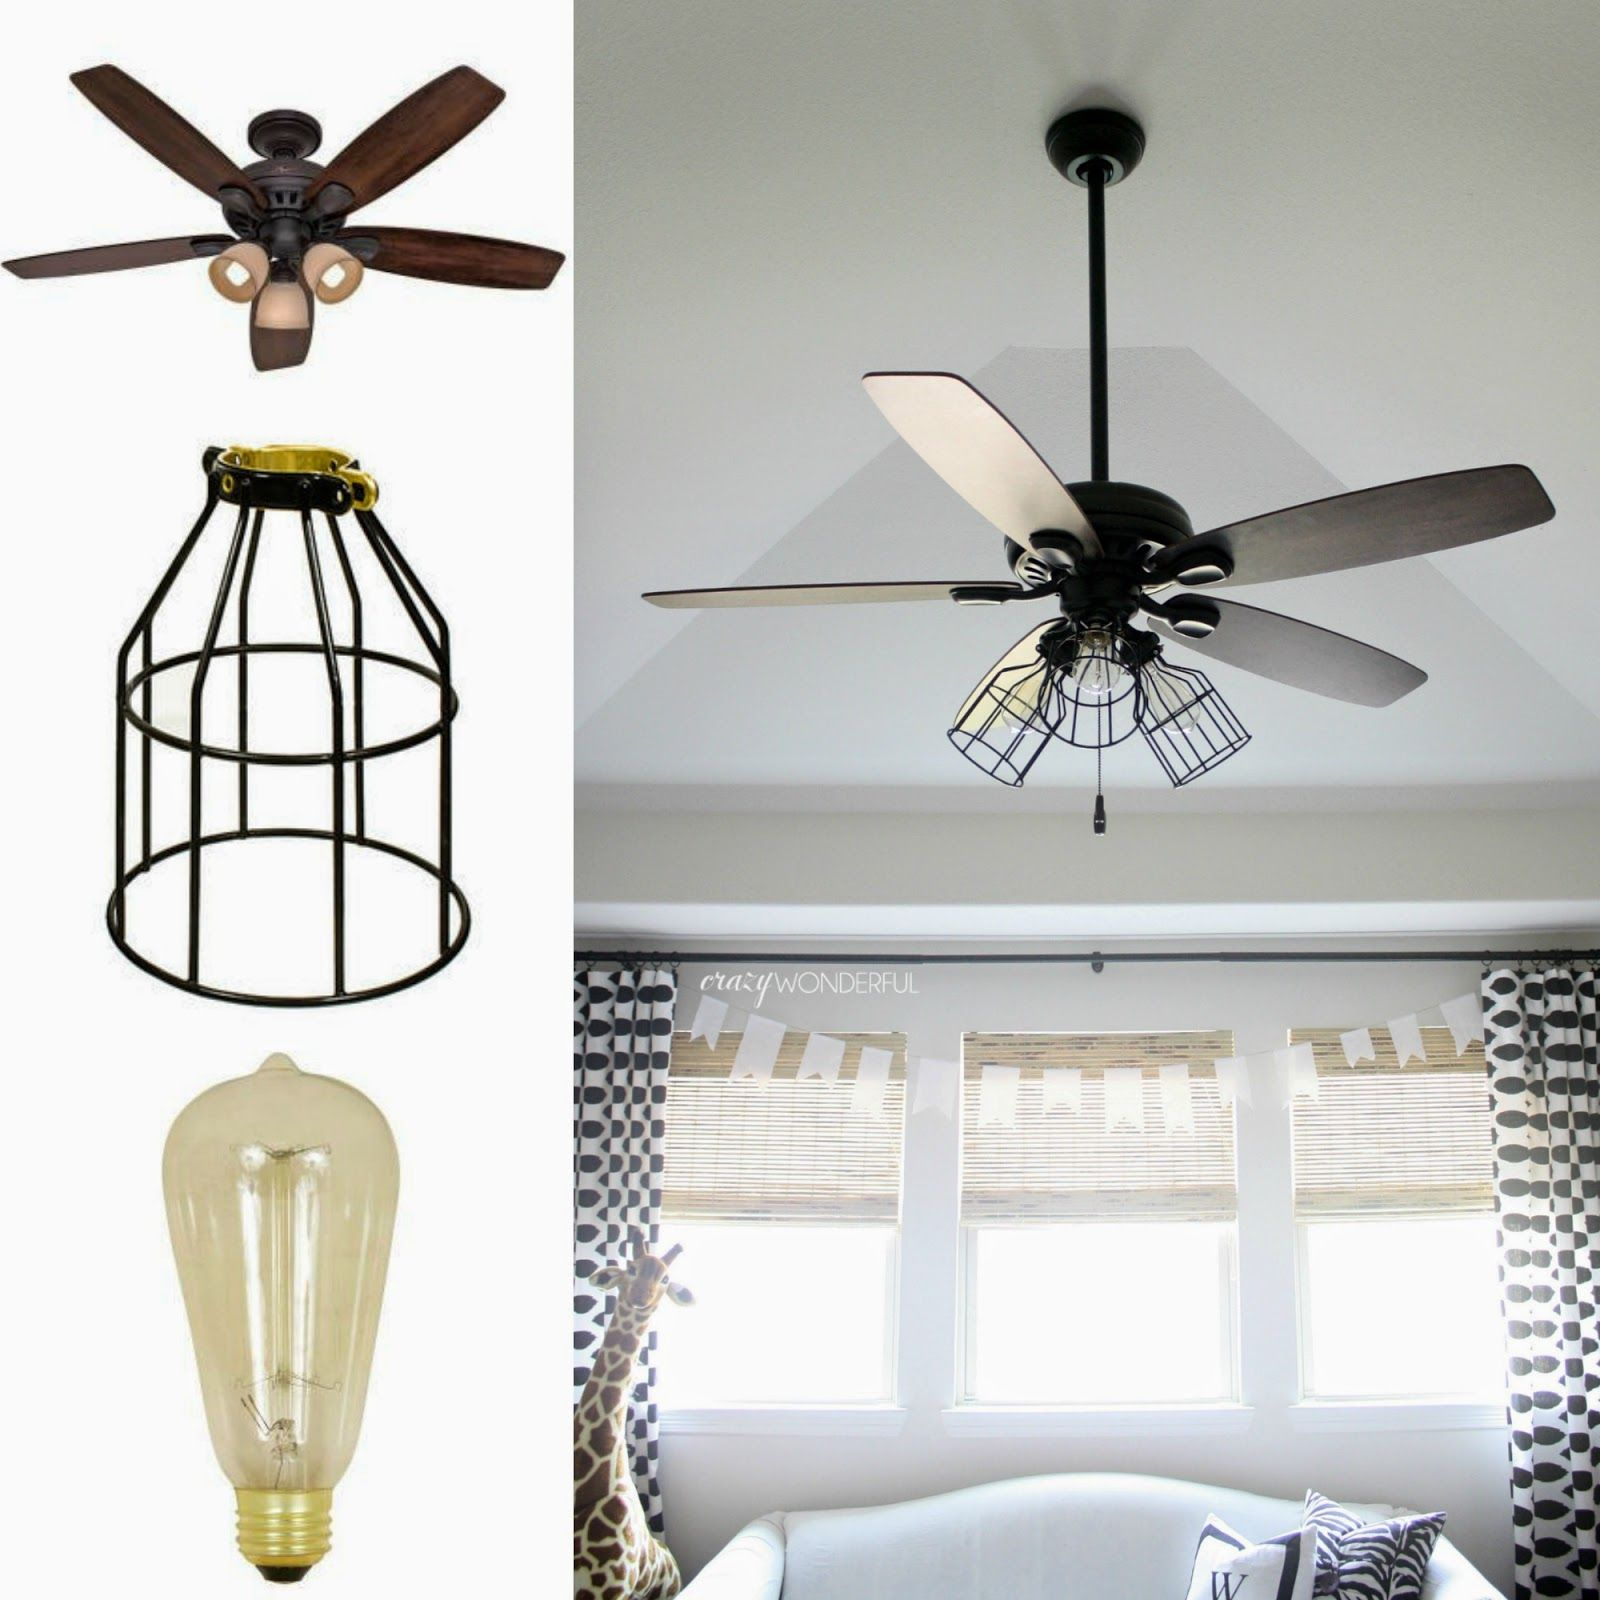 Crazy Wonderful DIY cage light ceiling fan